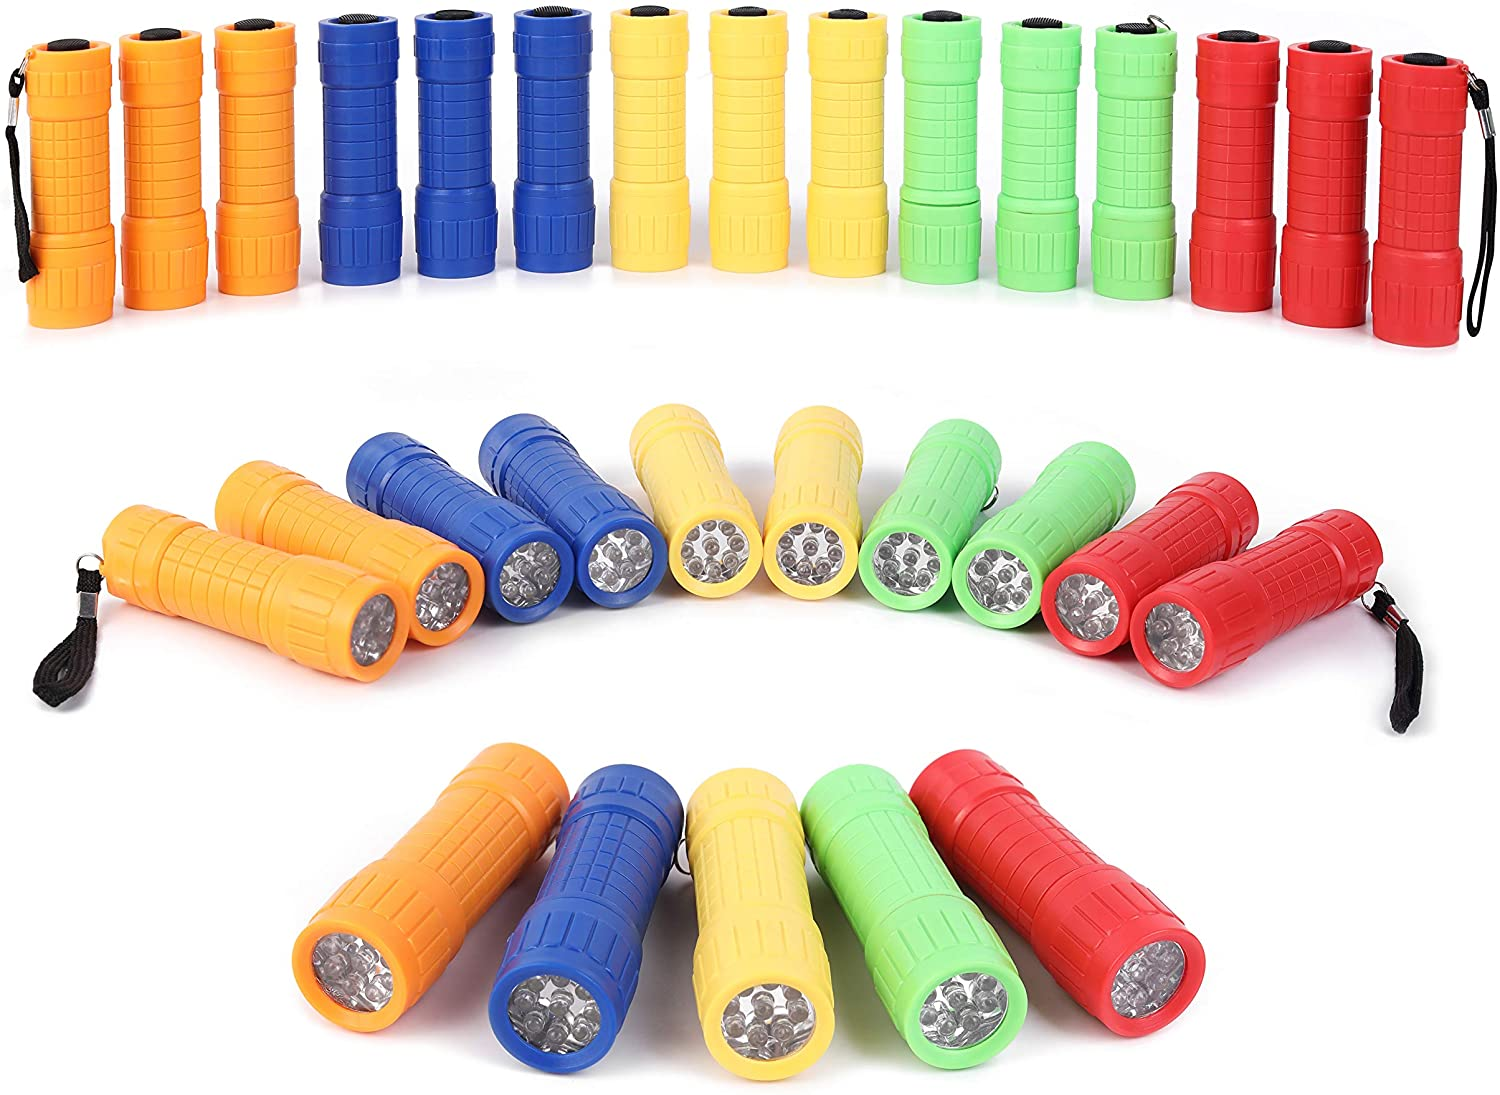 30-Pack Small Mini Flashlight Set, 5 Colors, 9-LED Handheld flashlight with Lanyard,90-Pack AAA Battery Included for Kids/Night Reading/Party/Camping/Emergency/Hunting (30)